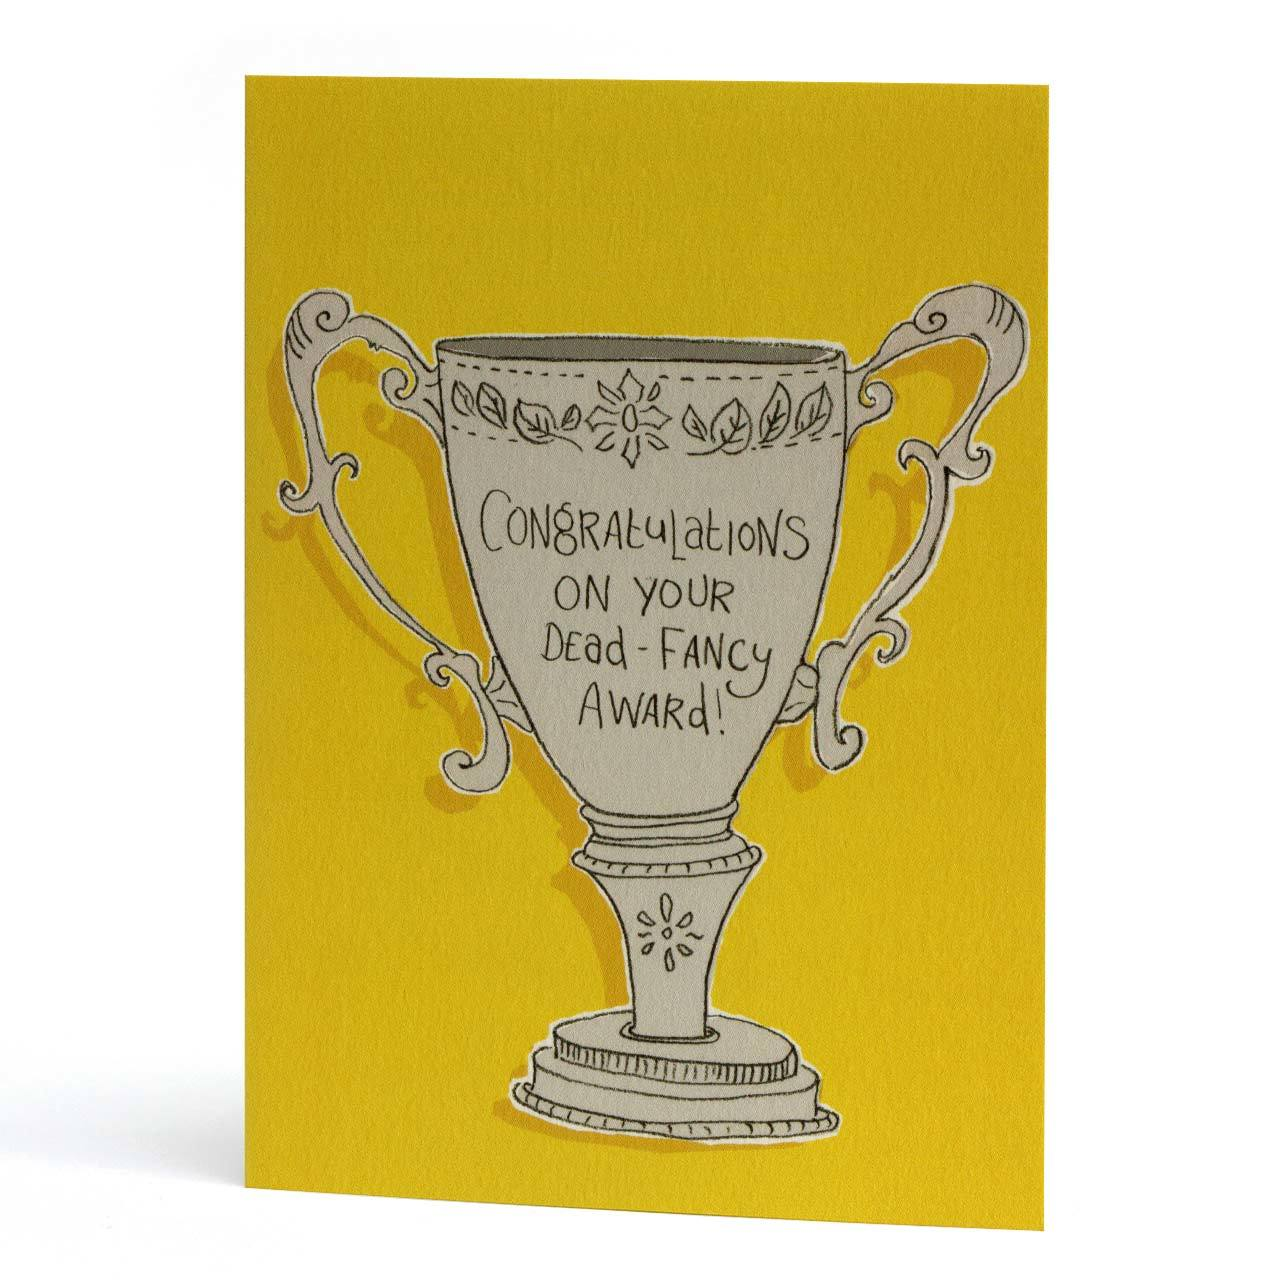 Dead Fancy Award Congrats Greeting Card